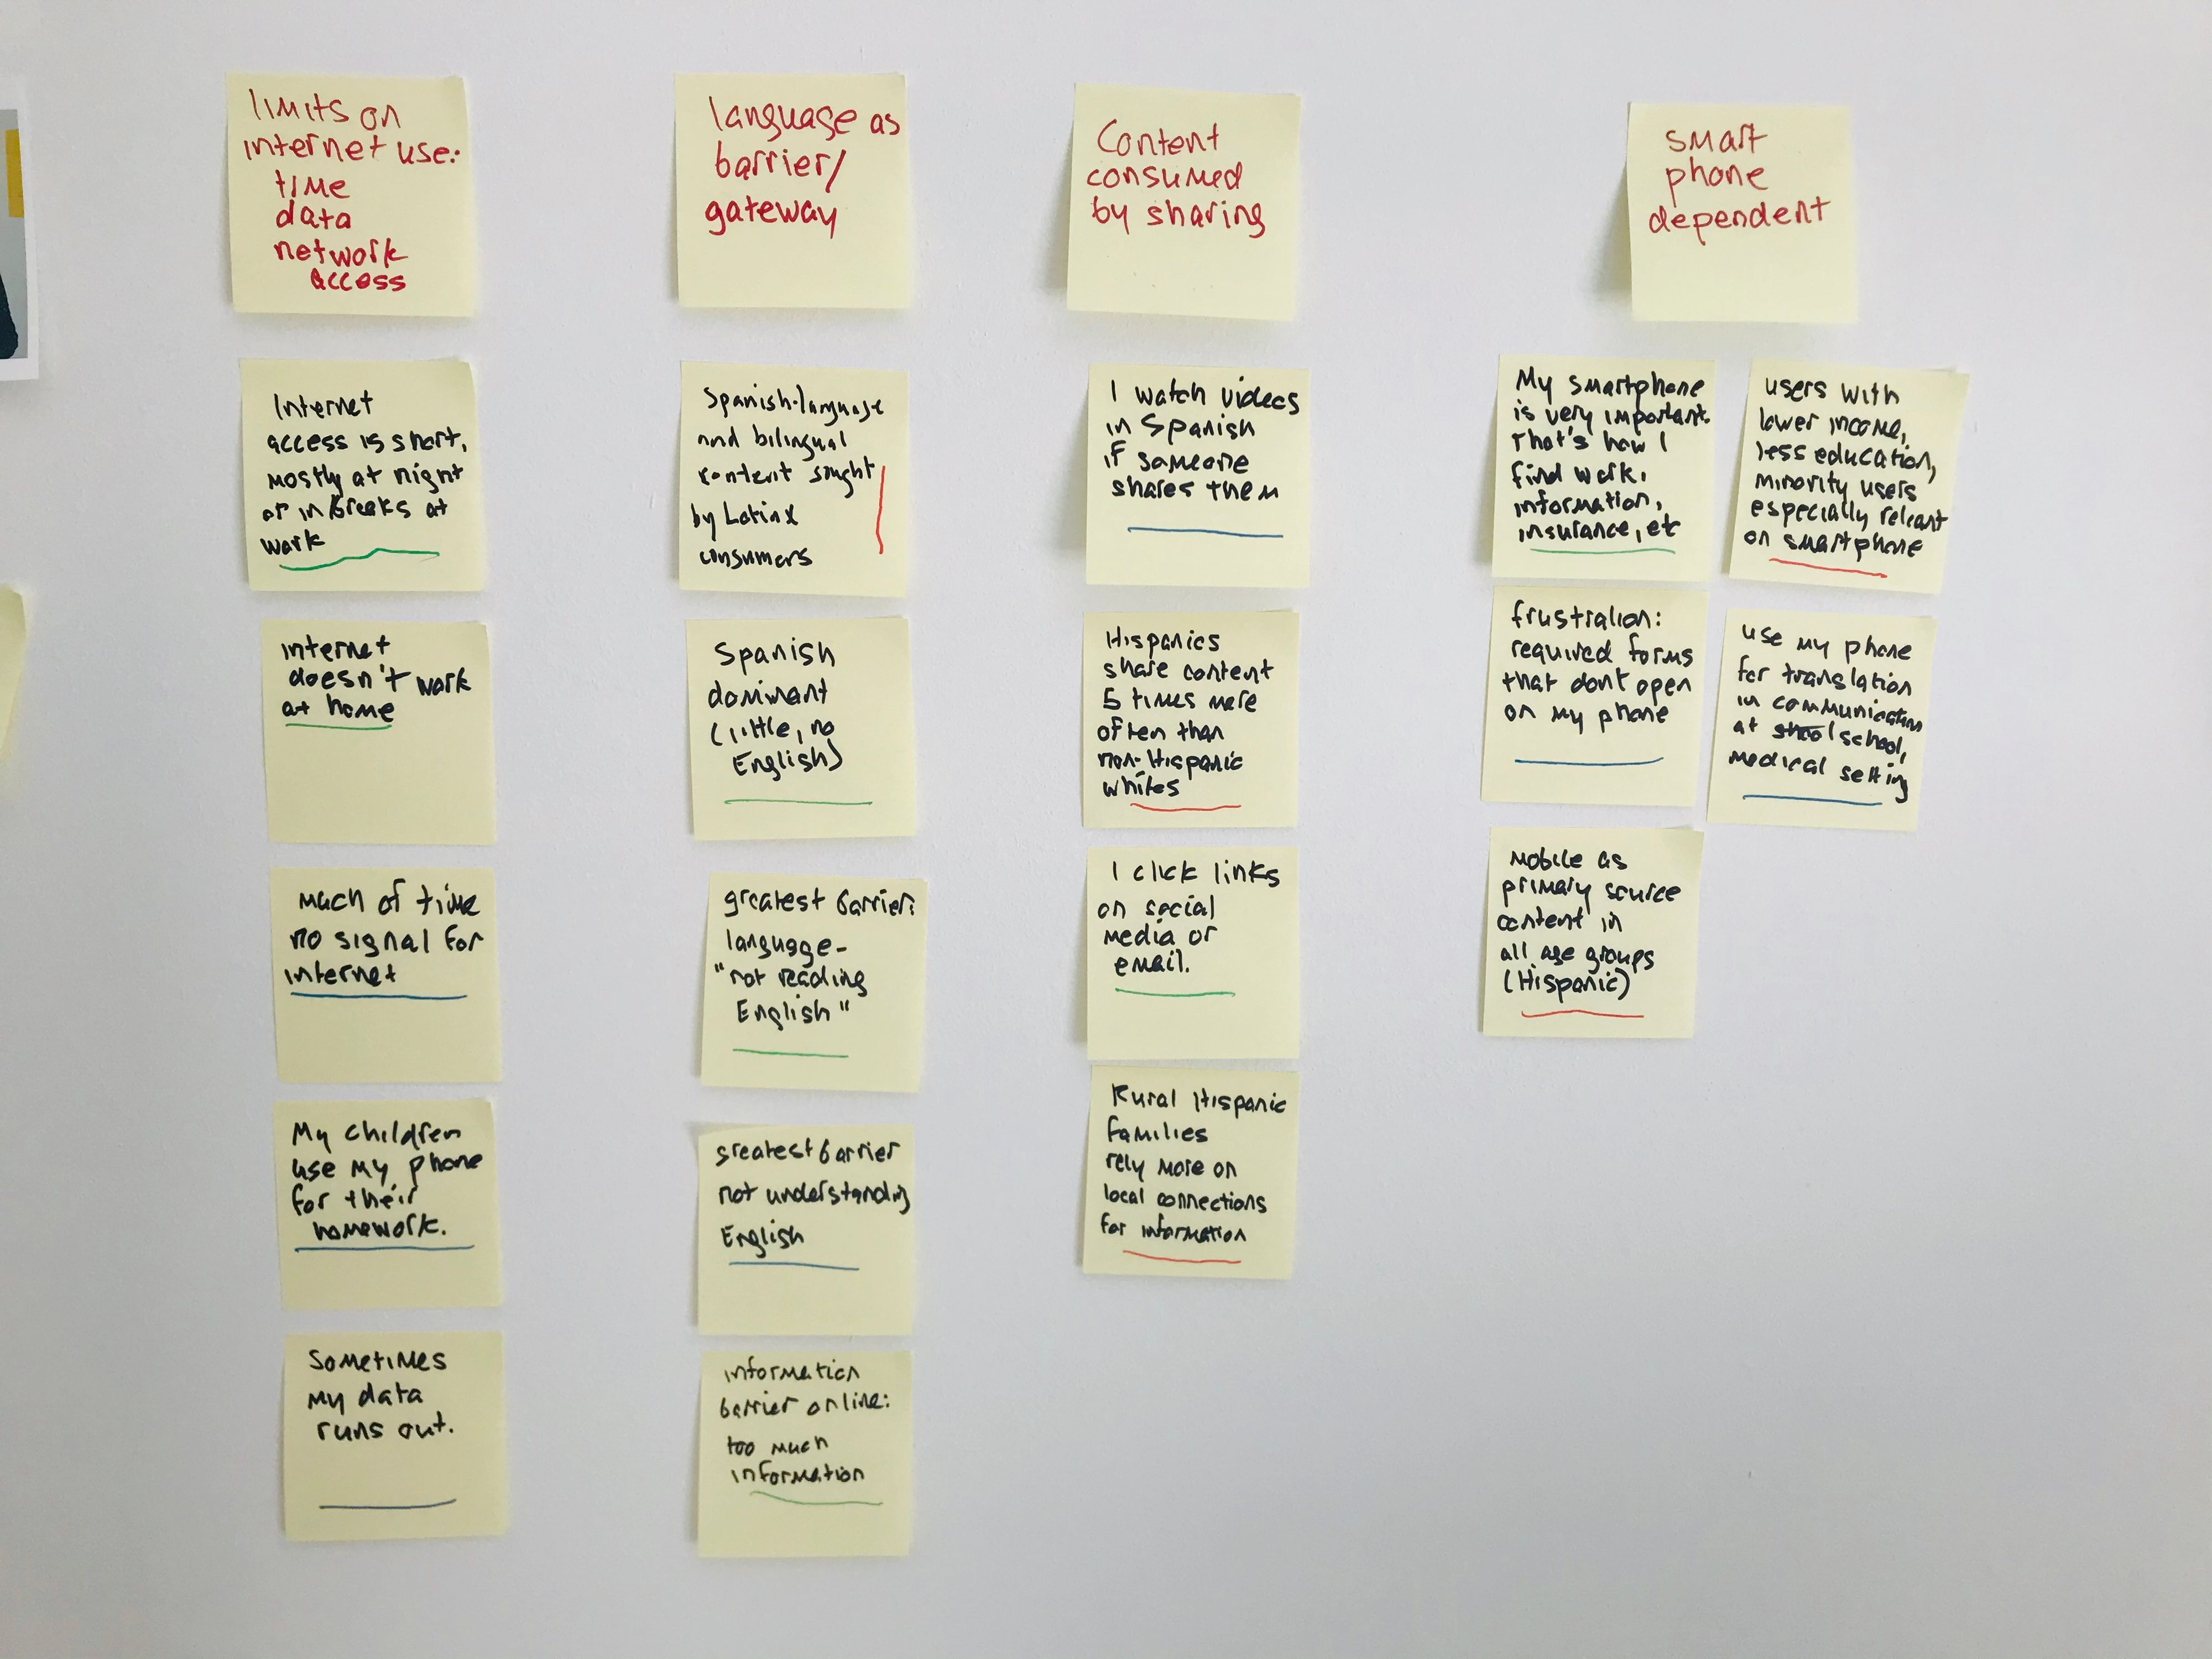 Interview quotes and research data were color-coded, affinity sorted and aligned with two likely personas.